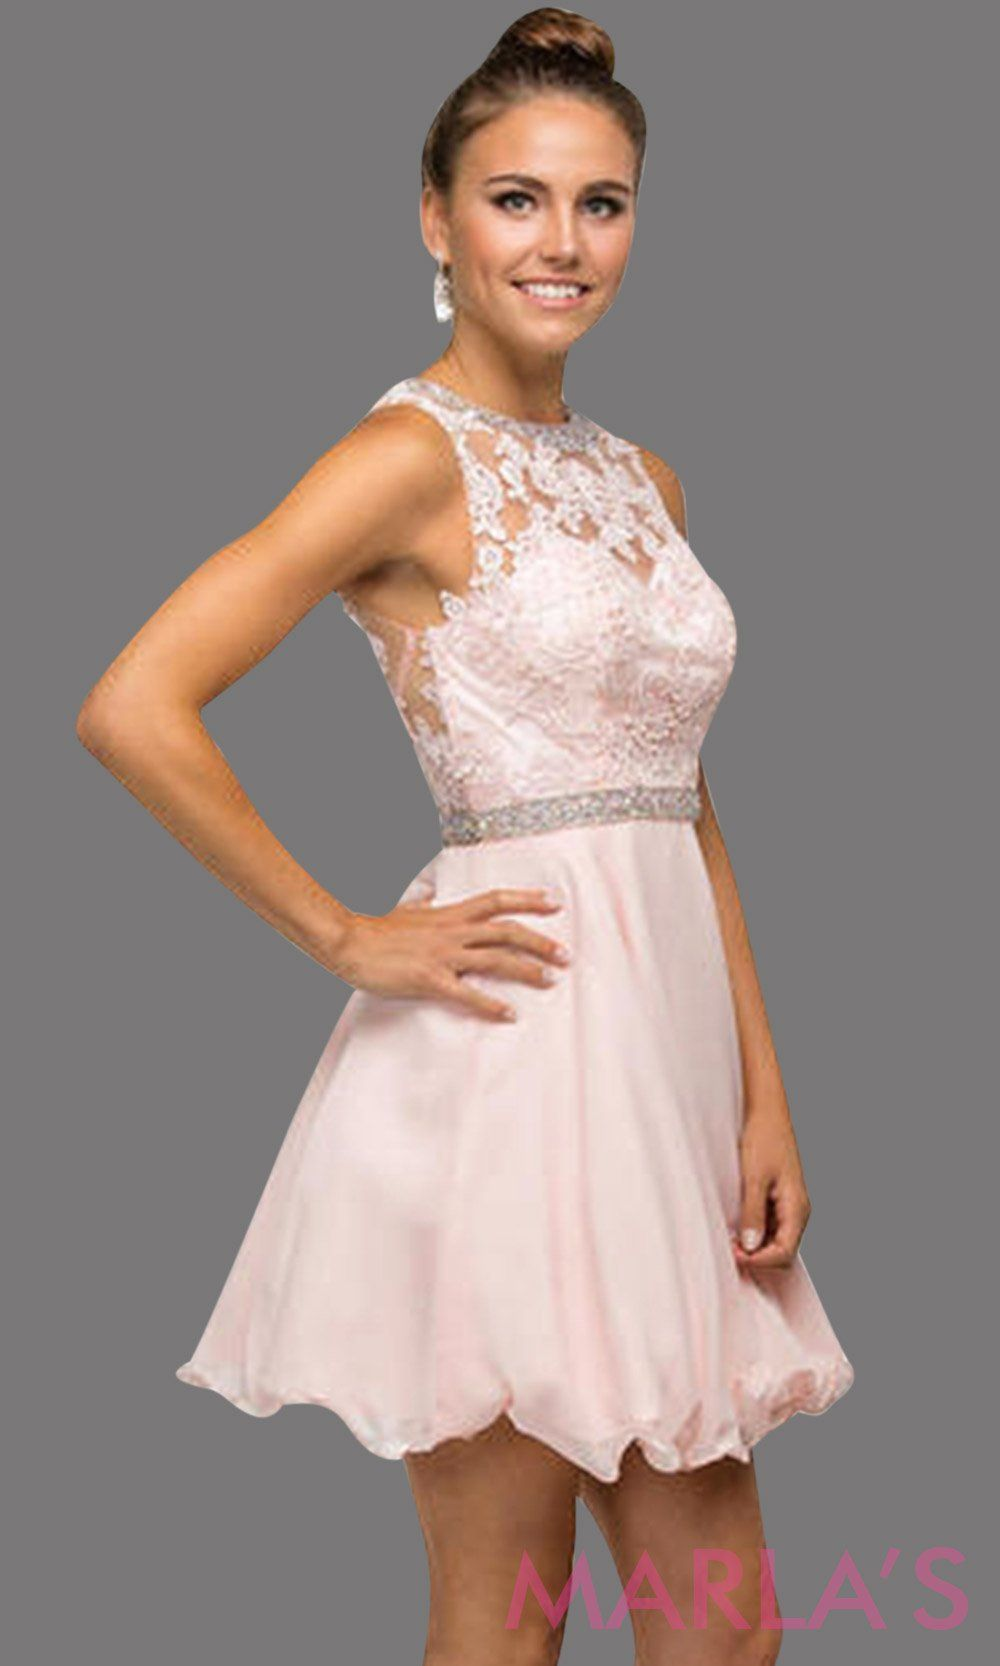 7f3d7b805d Short blush pink graduation dress with lace bodice, beaded belt and flowy  chiffon skirt. Perfect for grade 8 grad, short pink prom dress, quinceanera  damas, ...